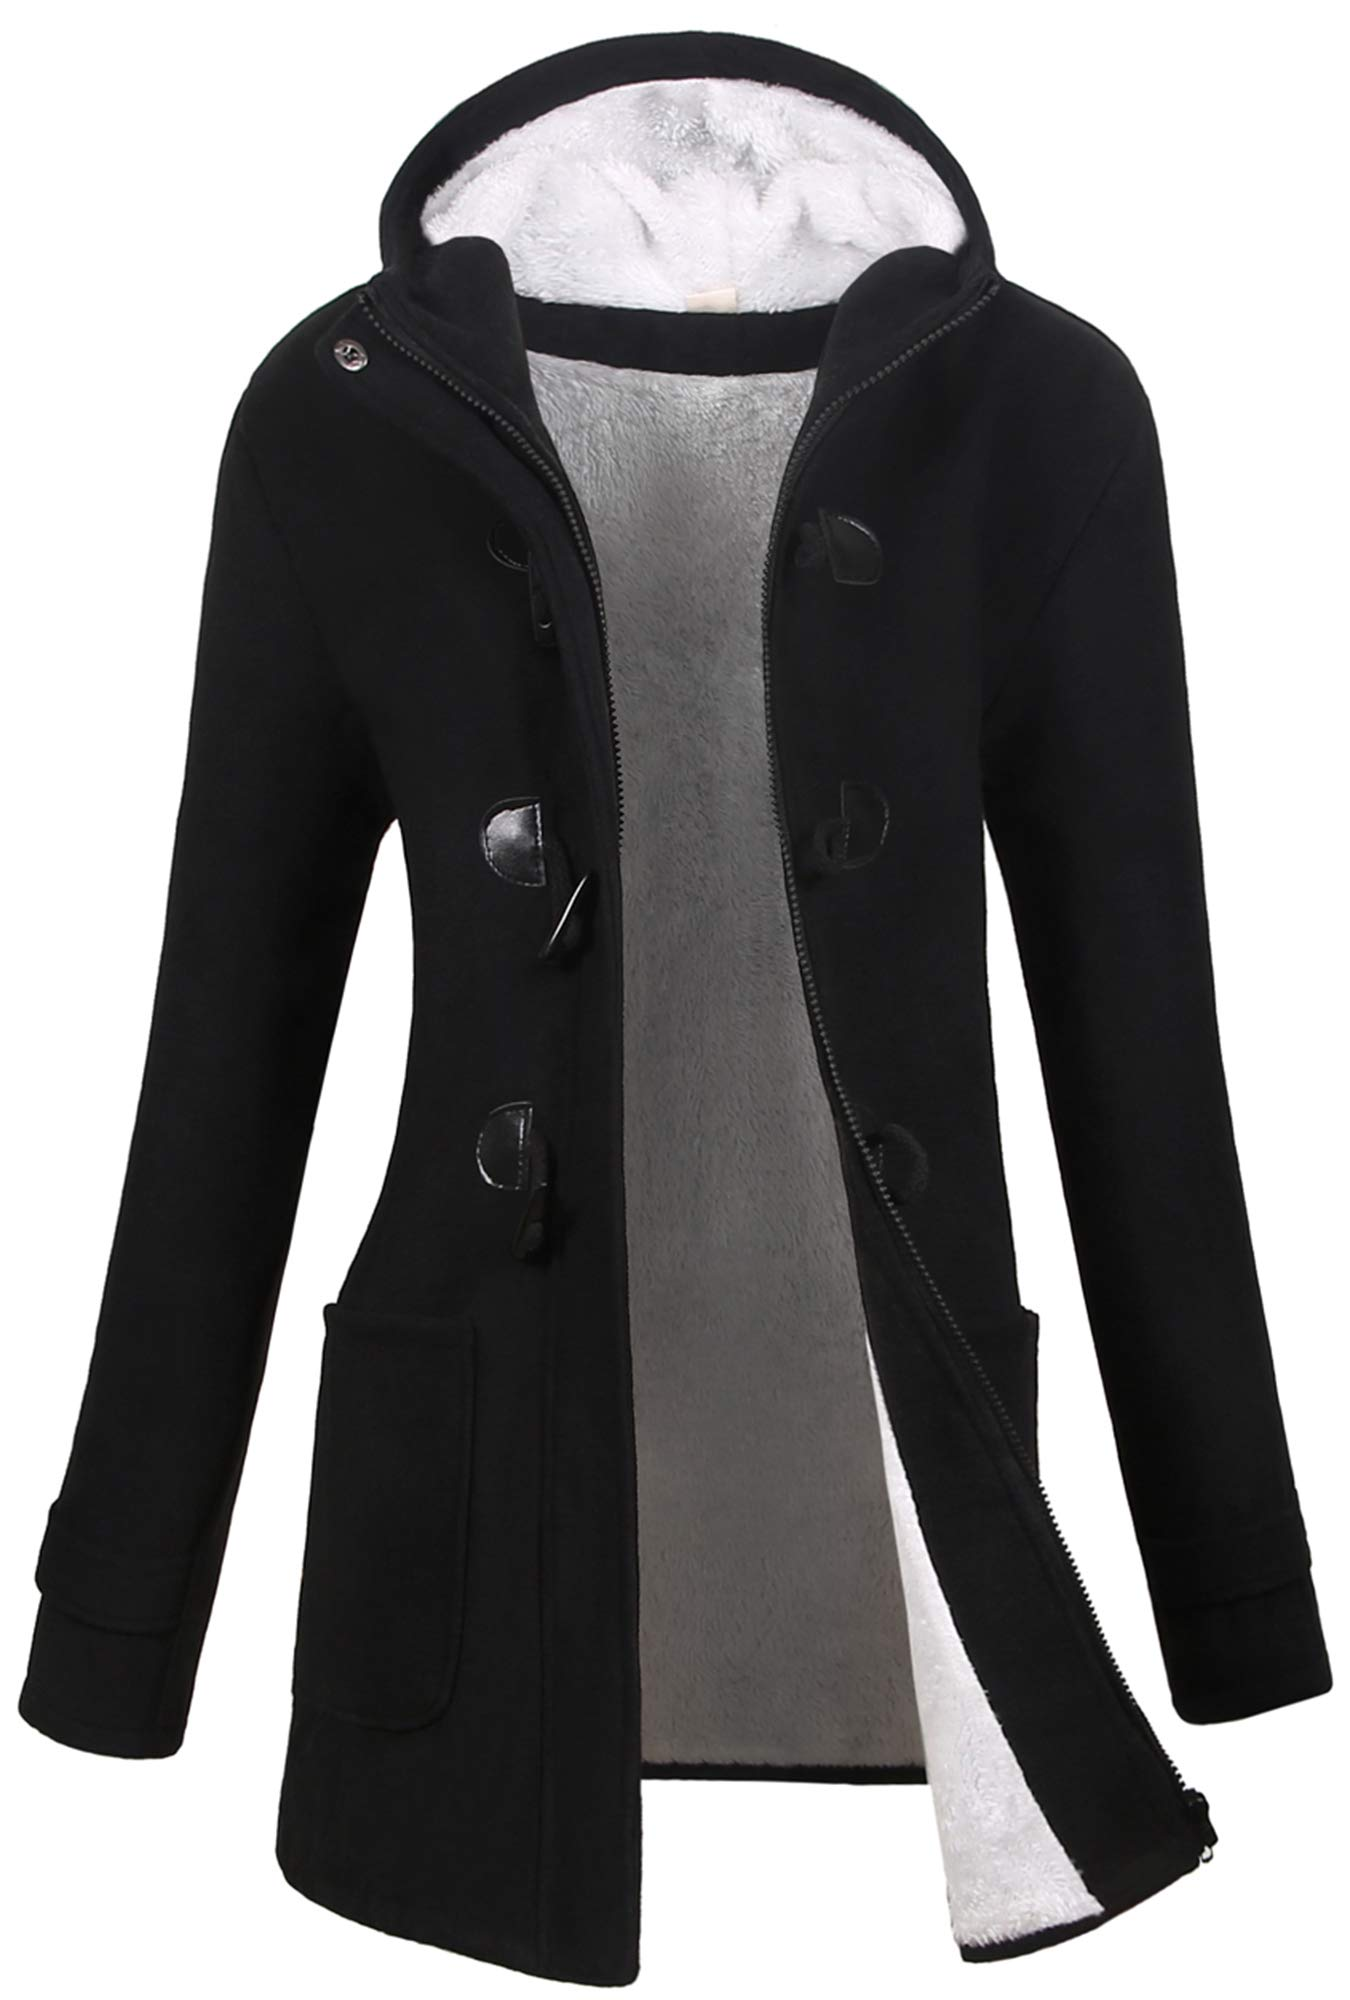 VOGRYE Womens Winter Fashion Outdoor Warm Wool Blended Classic Pea Coat Jacket (FBA) (M, Black2-Thicker) by VOGRYE